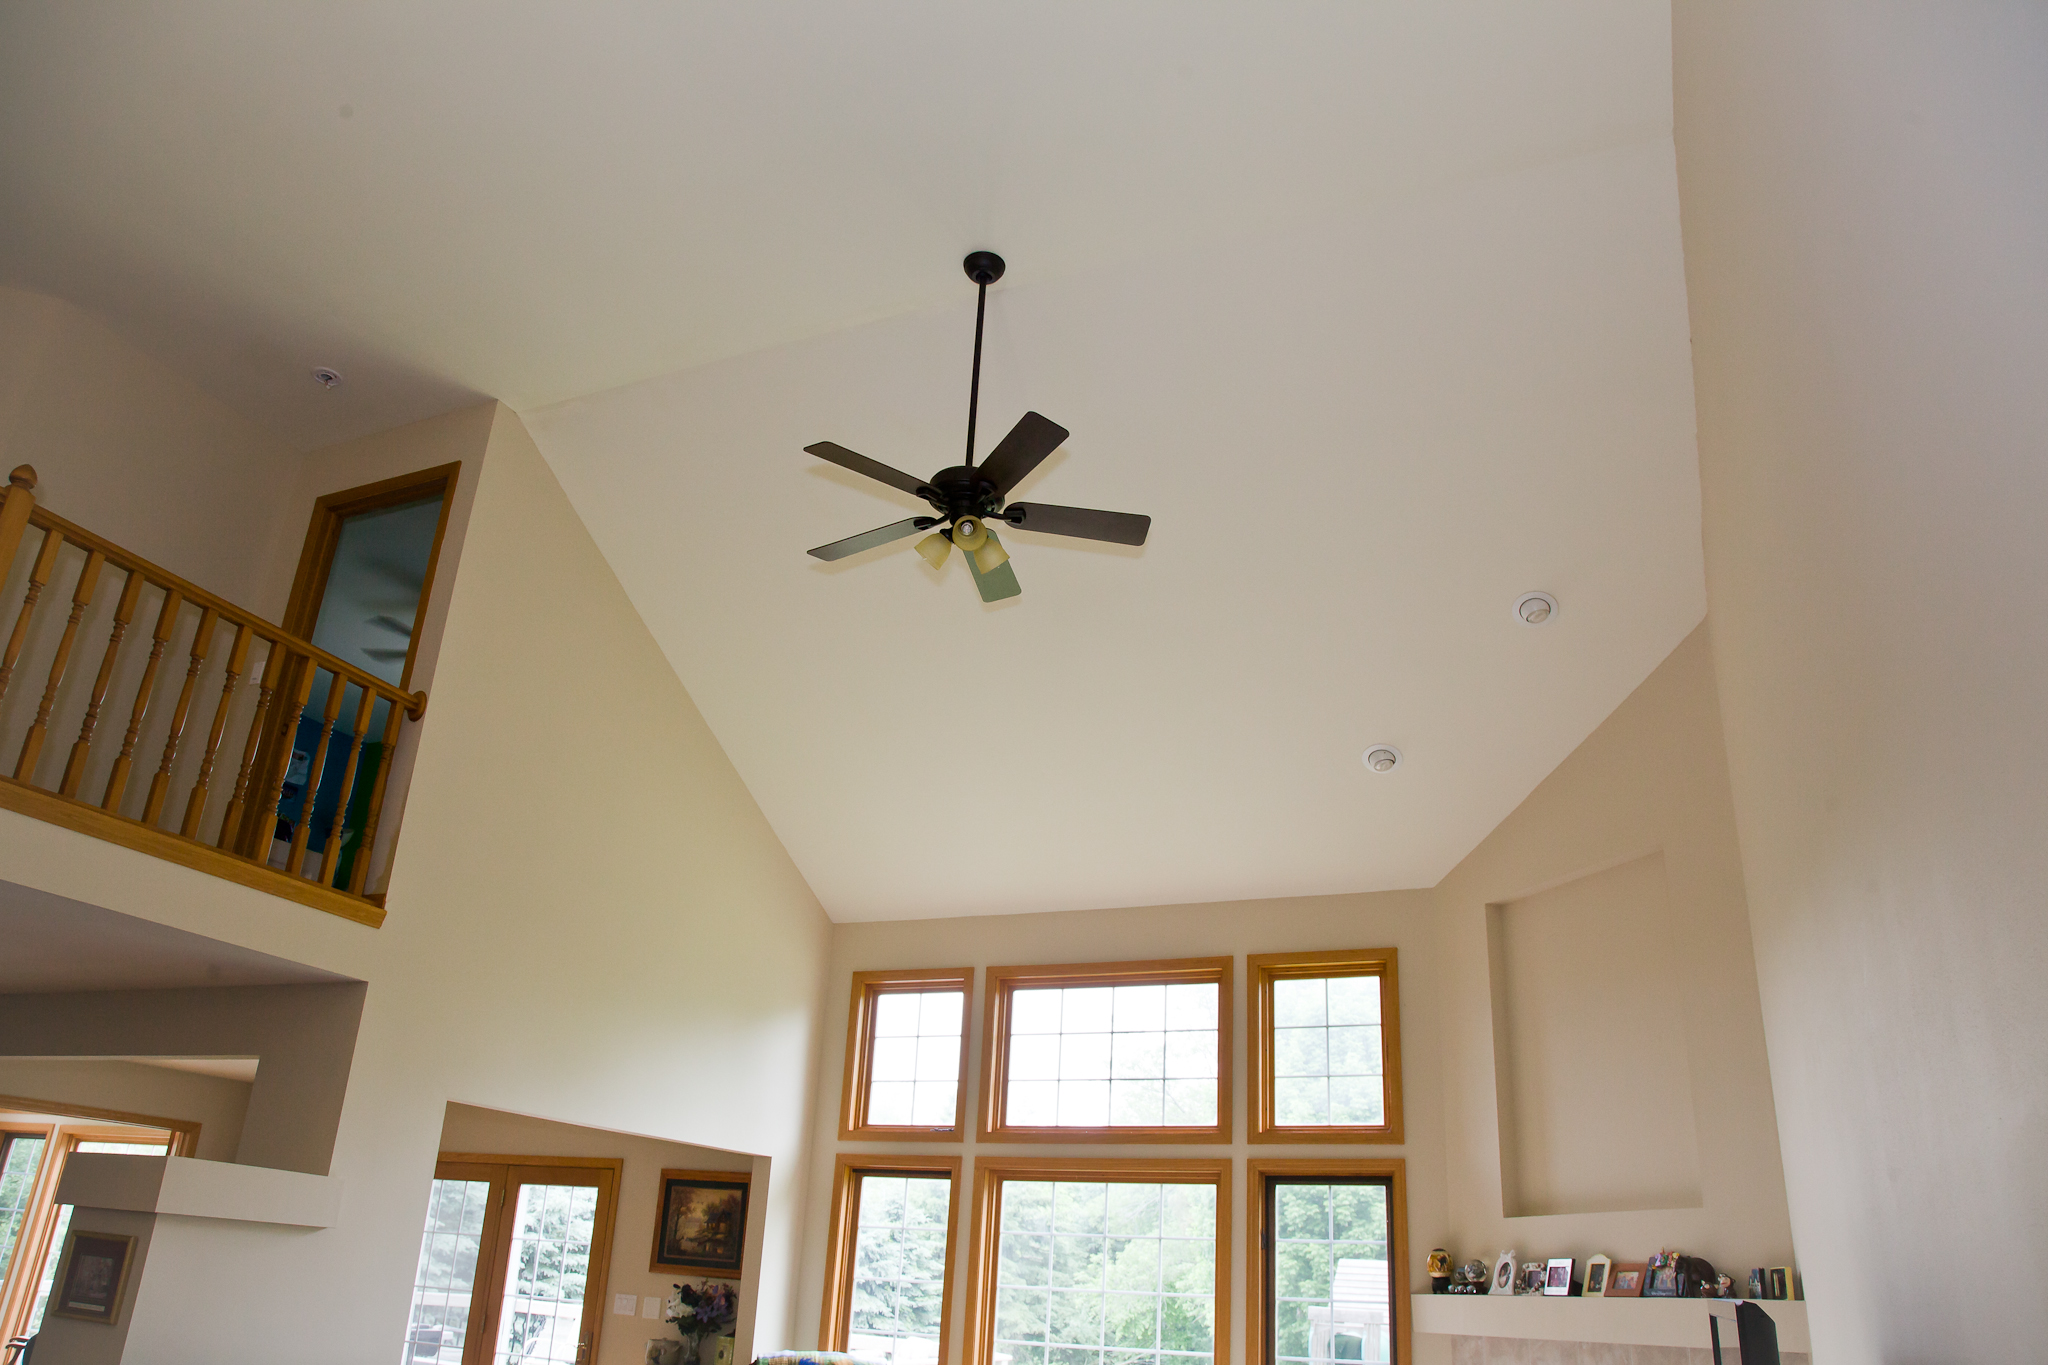 http://www.smart-accessible-living.com/wp-content/uploads/2014/06/Vaulted-Ceiling-Fan-Installed-by-Smart-Accessible-Living.jpg